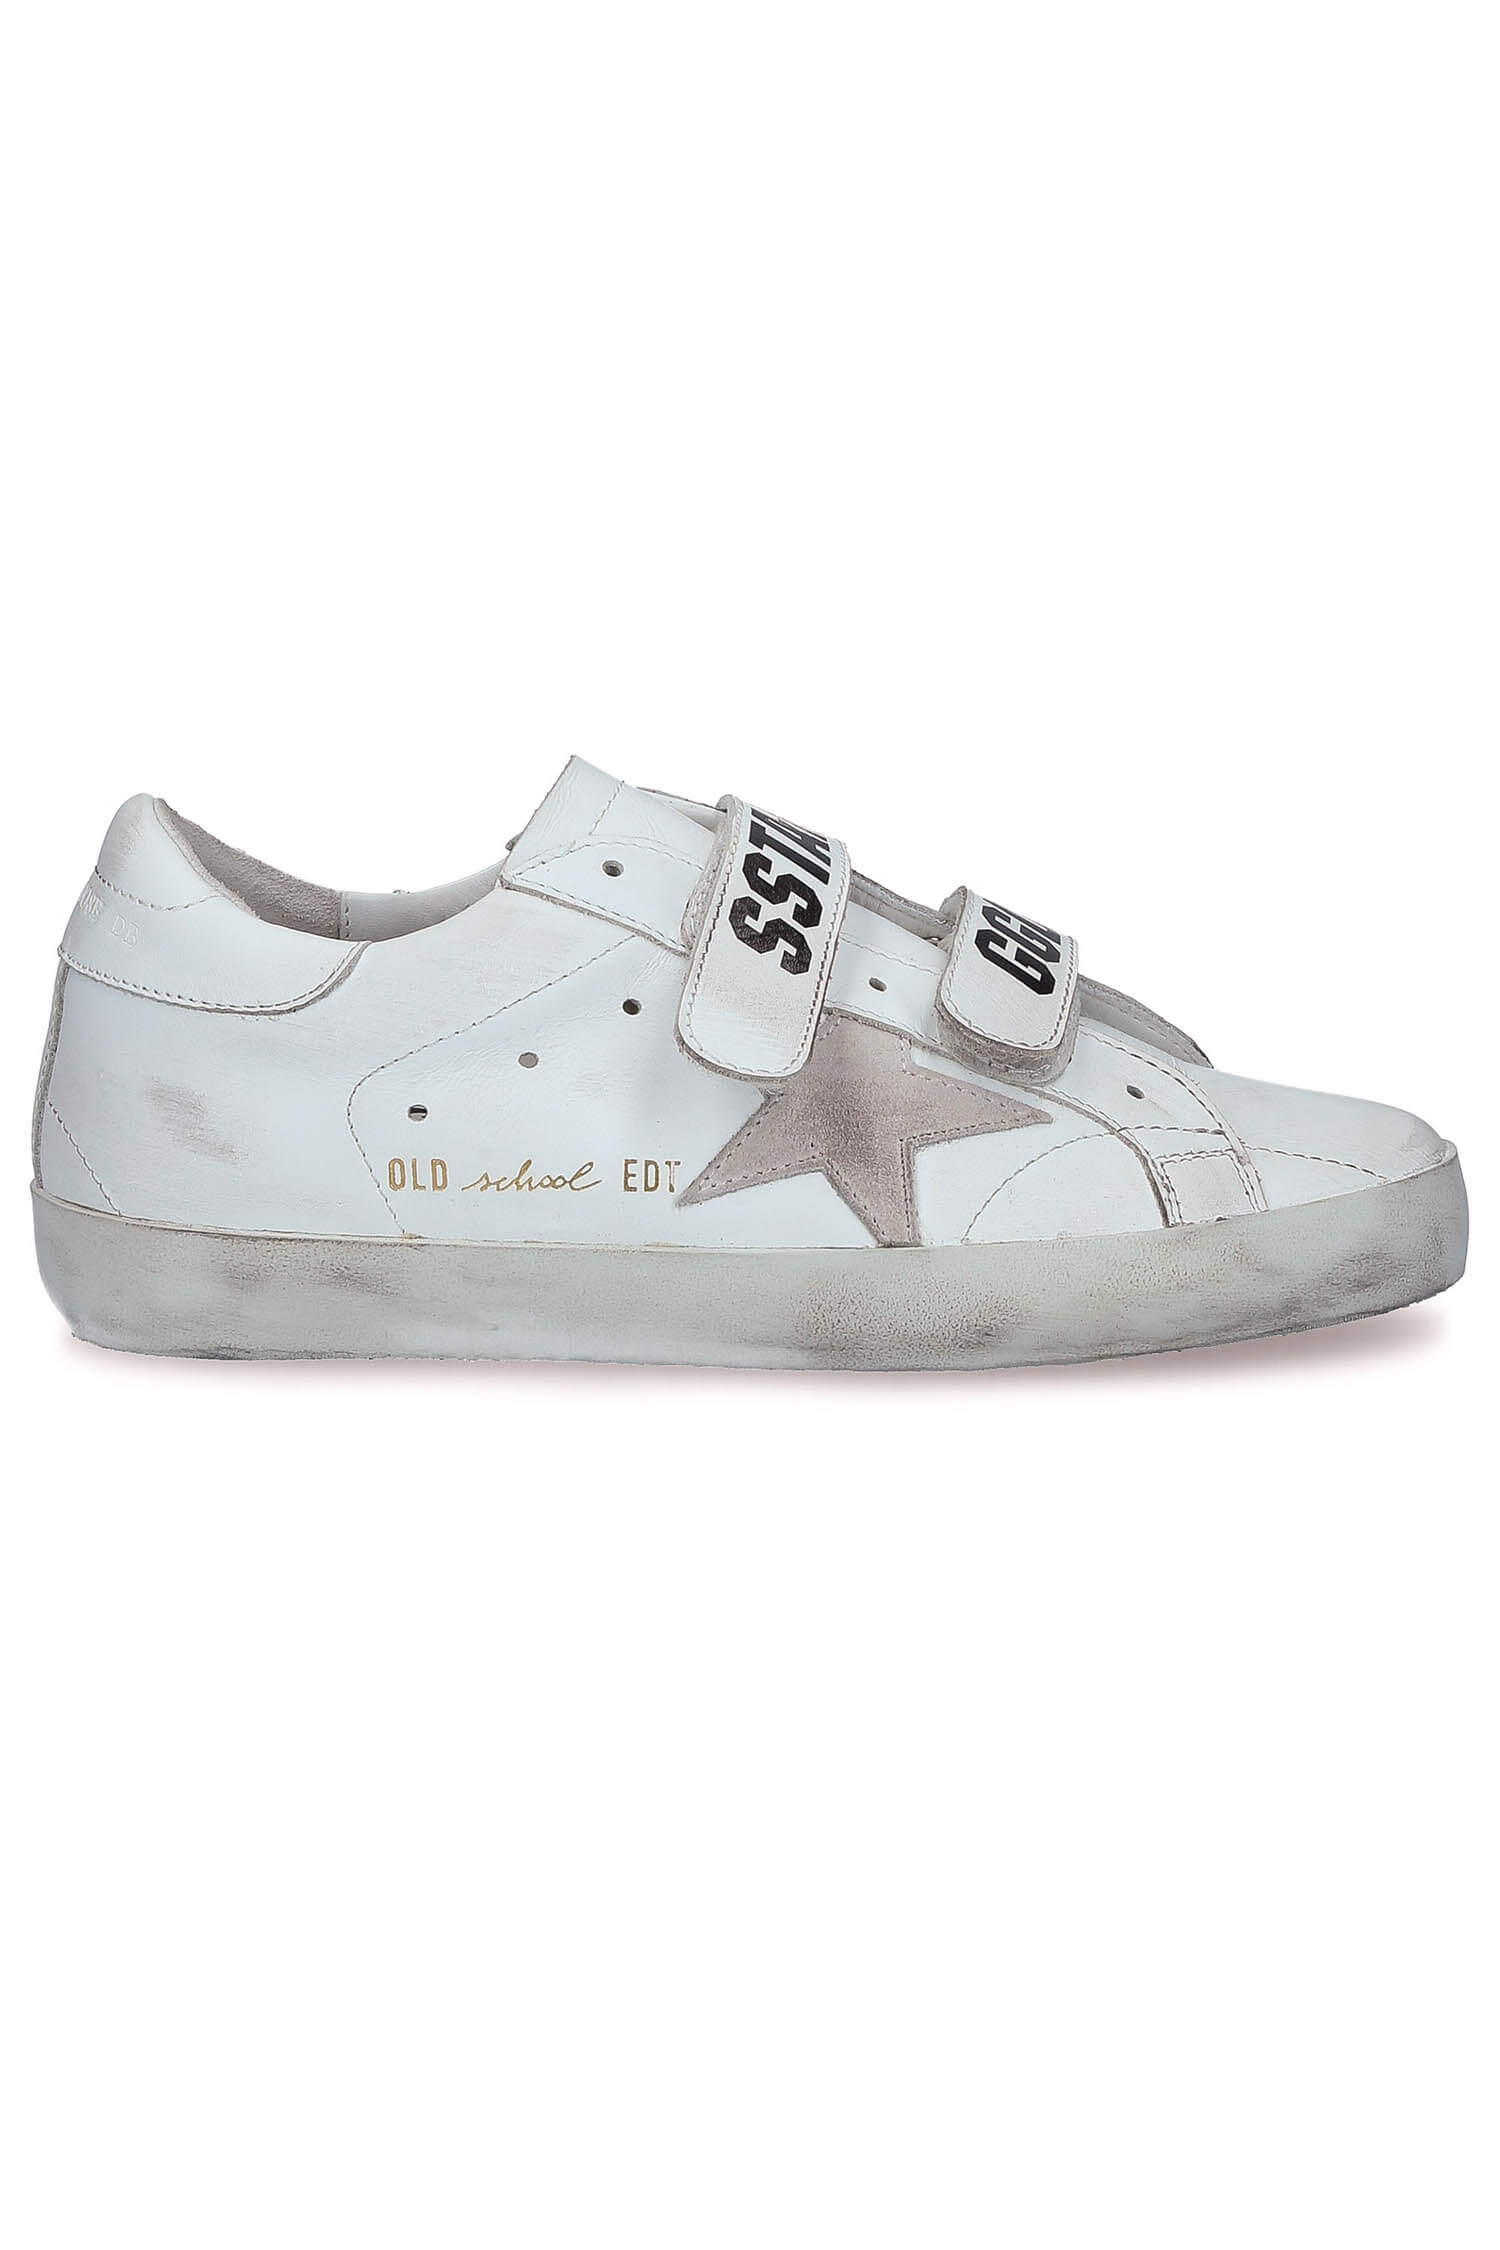 Baskets Cuir Scratchs Old SchoolGolden Goose 0ULrry